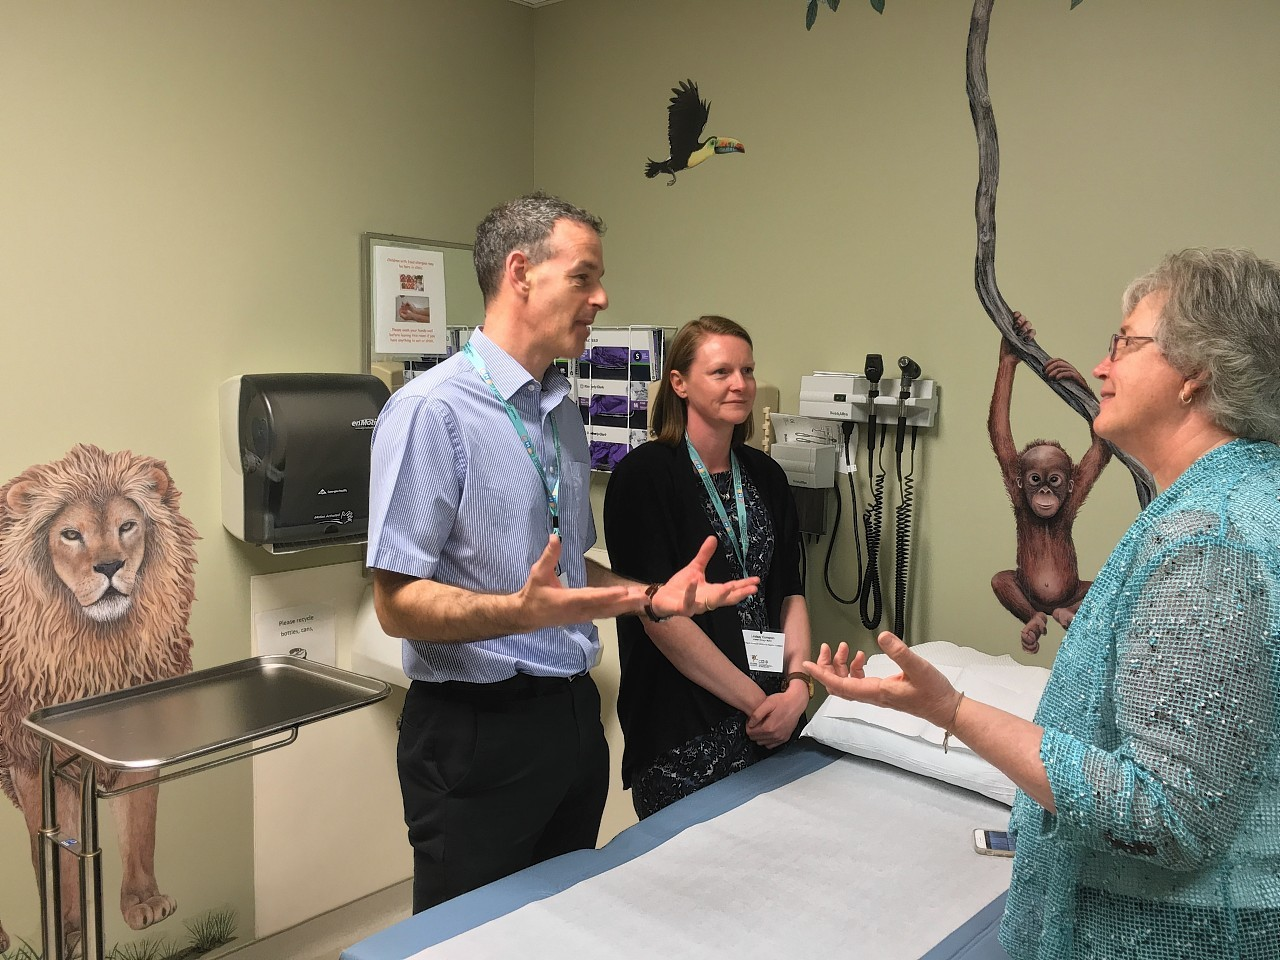 Dr Steve Turner and Senior Charge Nurse Lindsay Cameron discussing patient care in the oncology unit in Children's Hospital Dartmouth-Hitchcock with Sharon Brown from CHaD.